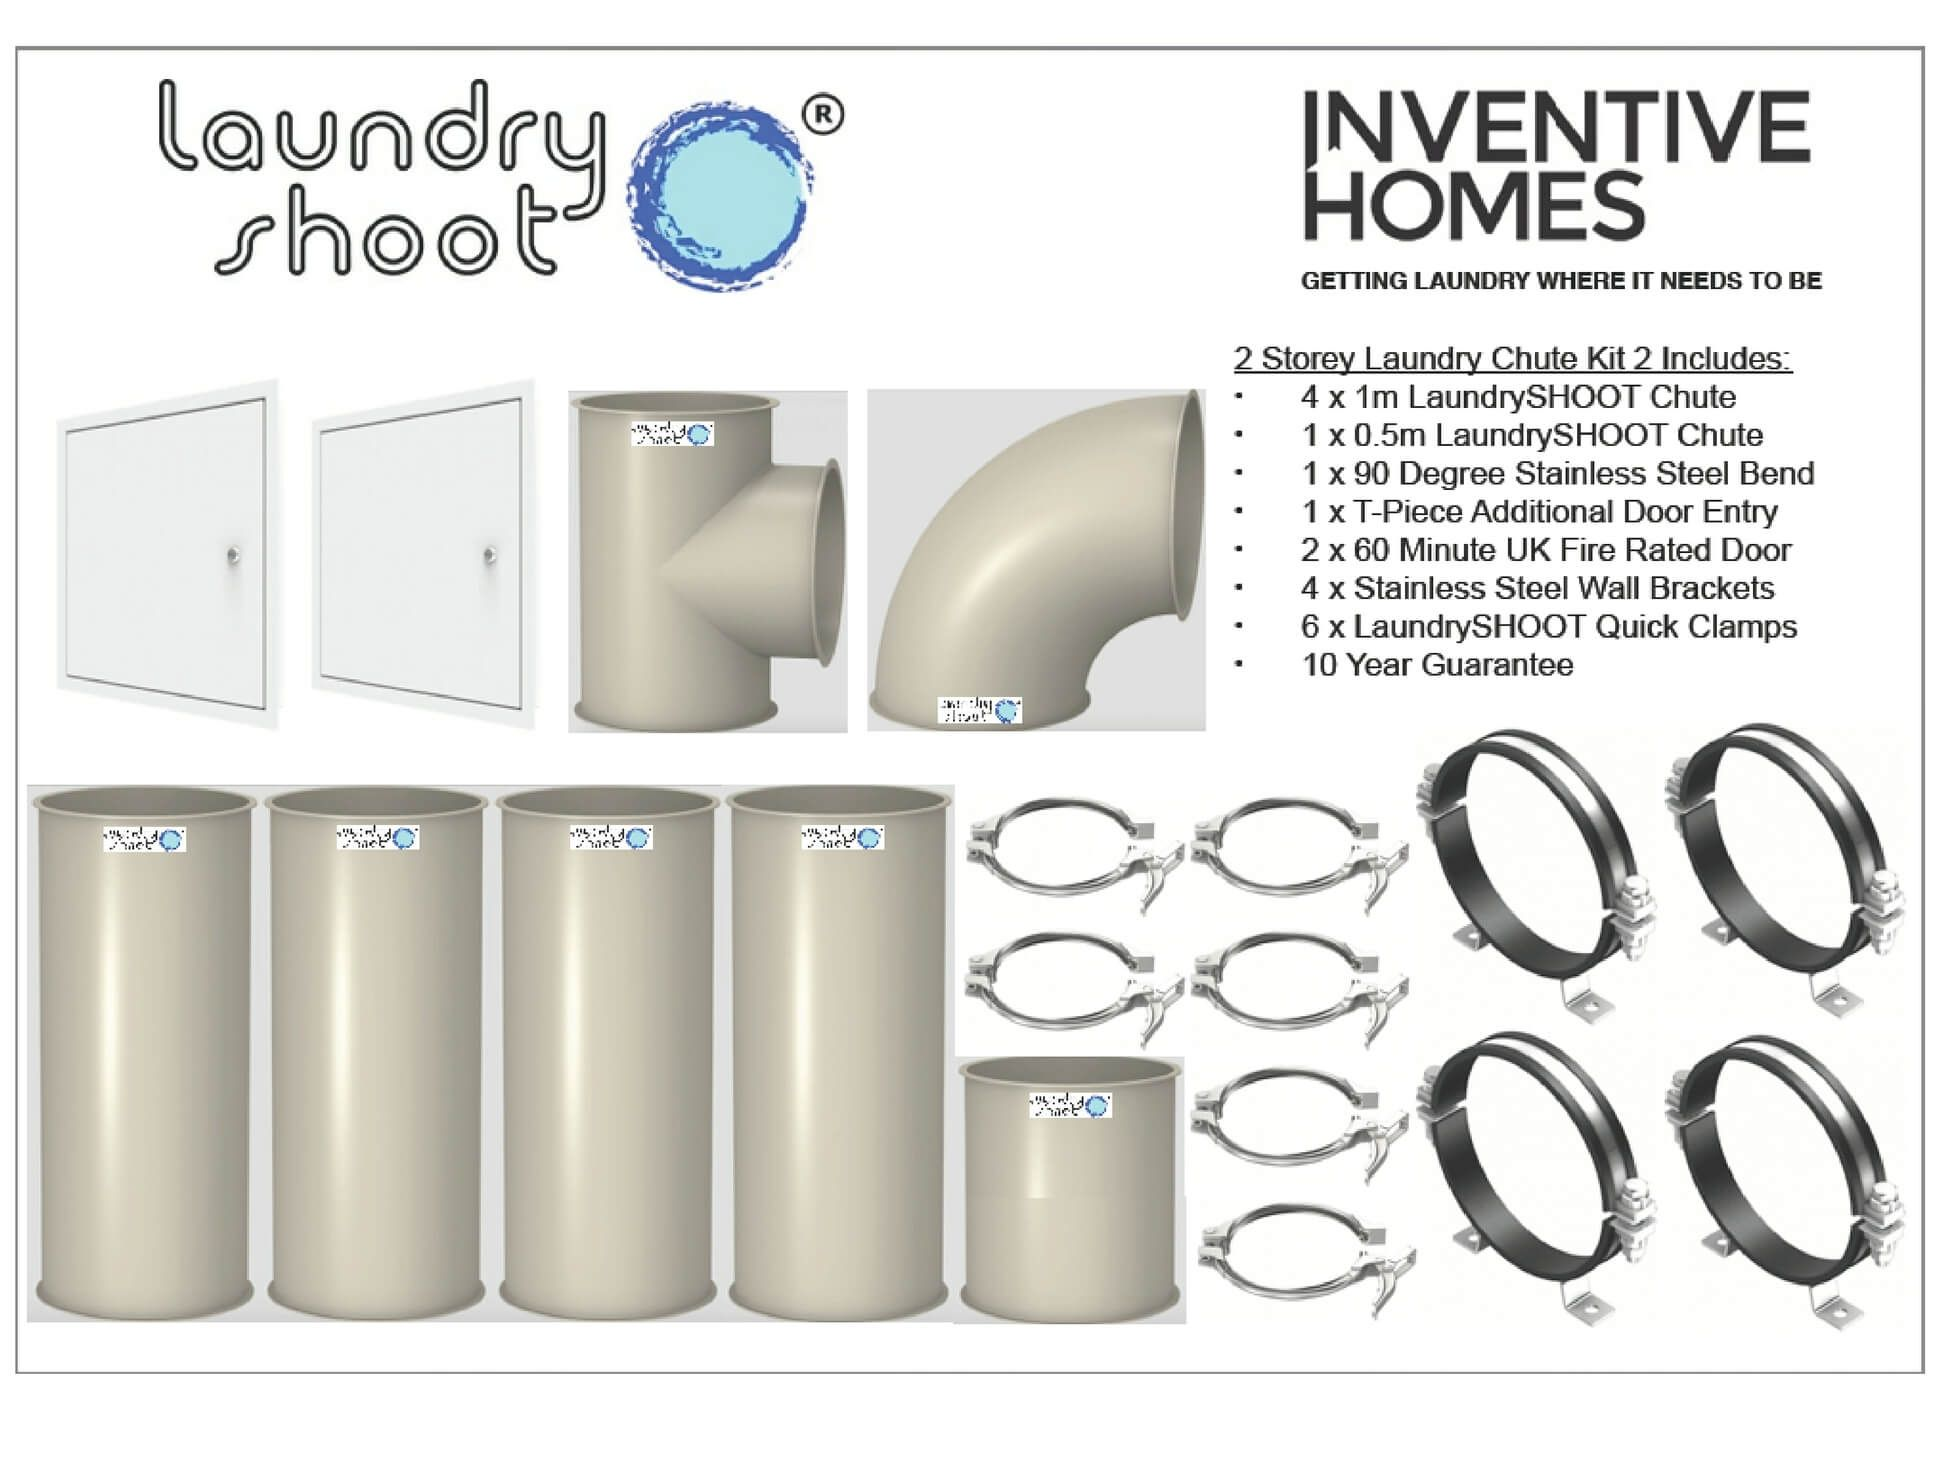 Laundry Shoot Chute 2 Y House Kit Inc Entry Points